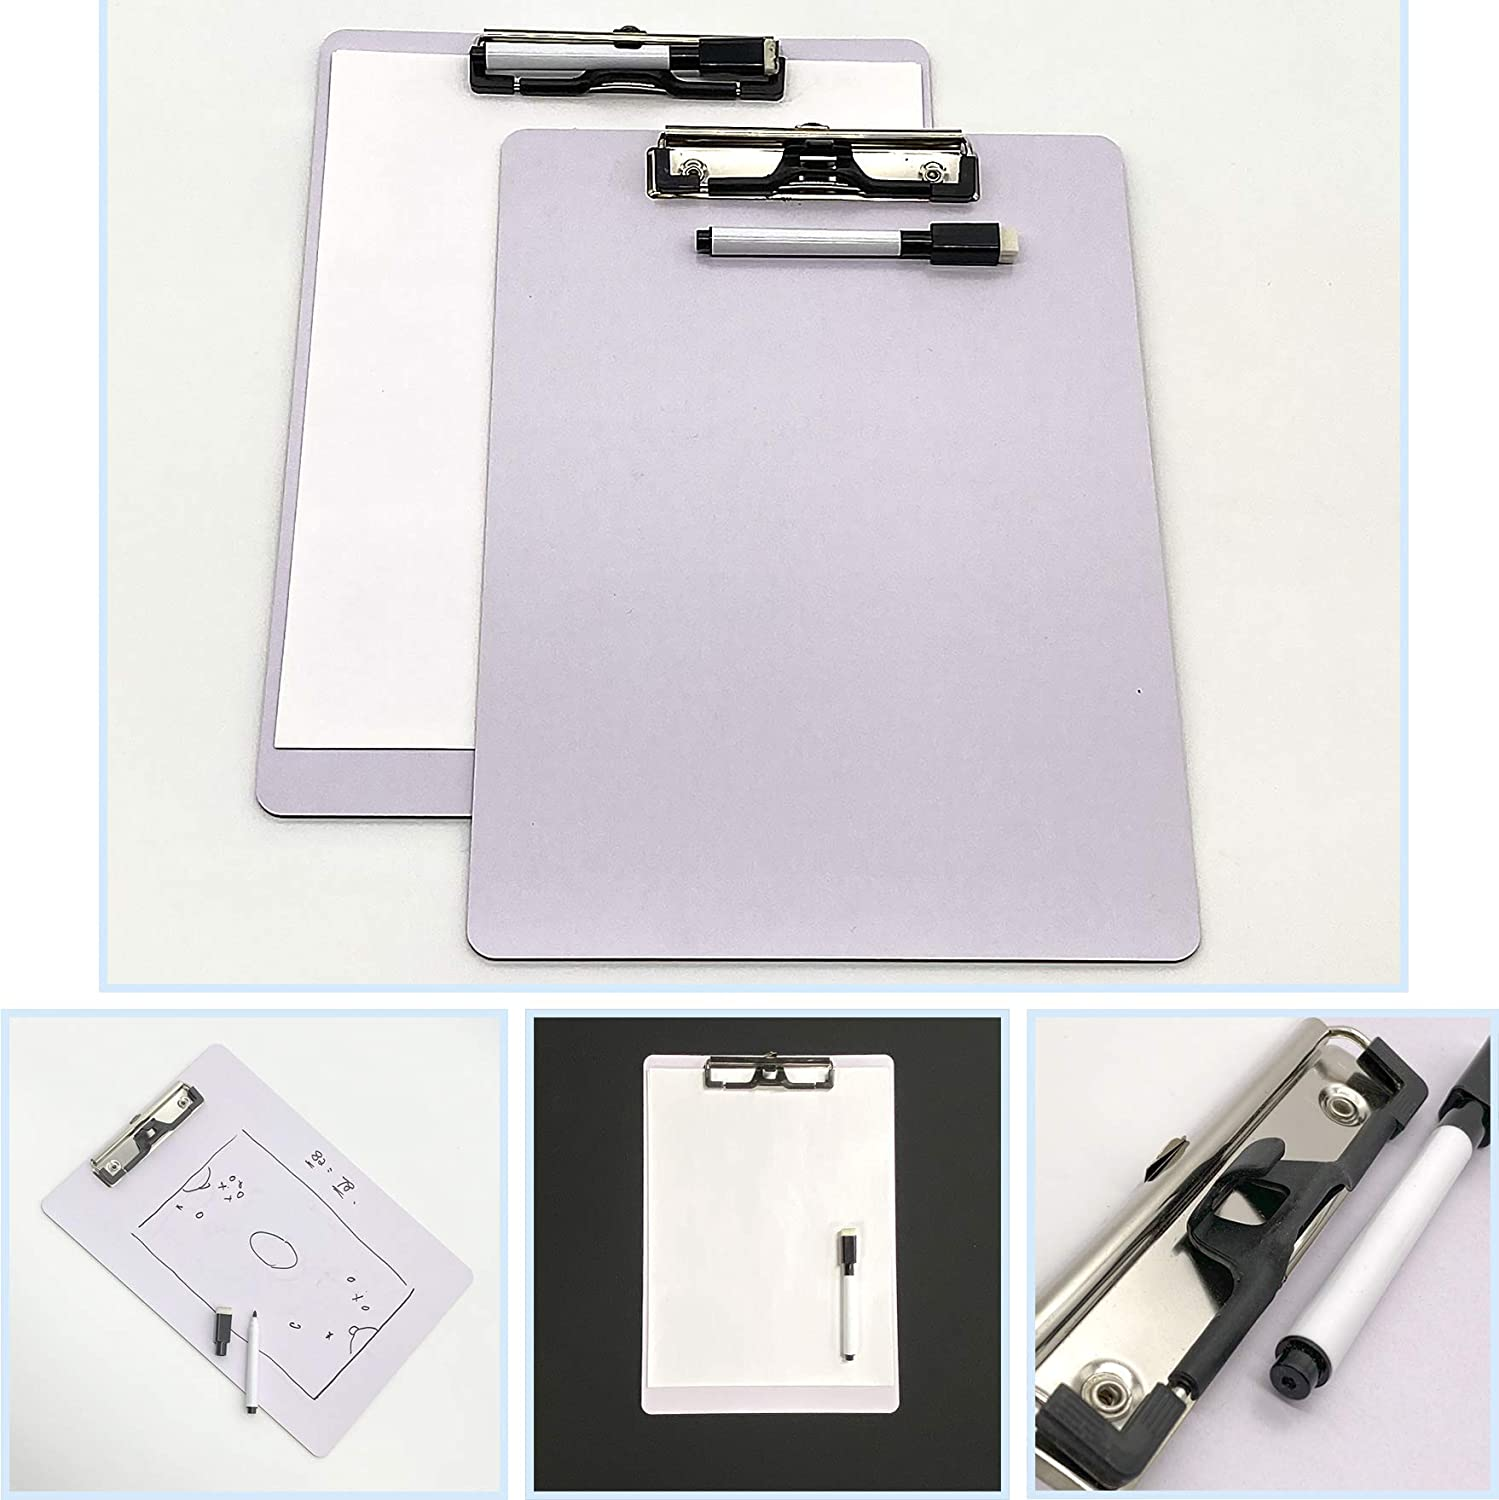 Marker /& Eraser great for teachers meeting note JCHB 2 sets Letter Size Dry Erase White Board Clipboard with Pen Clip students writing practice kids drawing game classroom double sided whiteboard